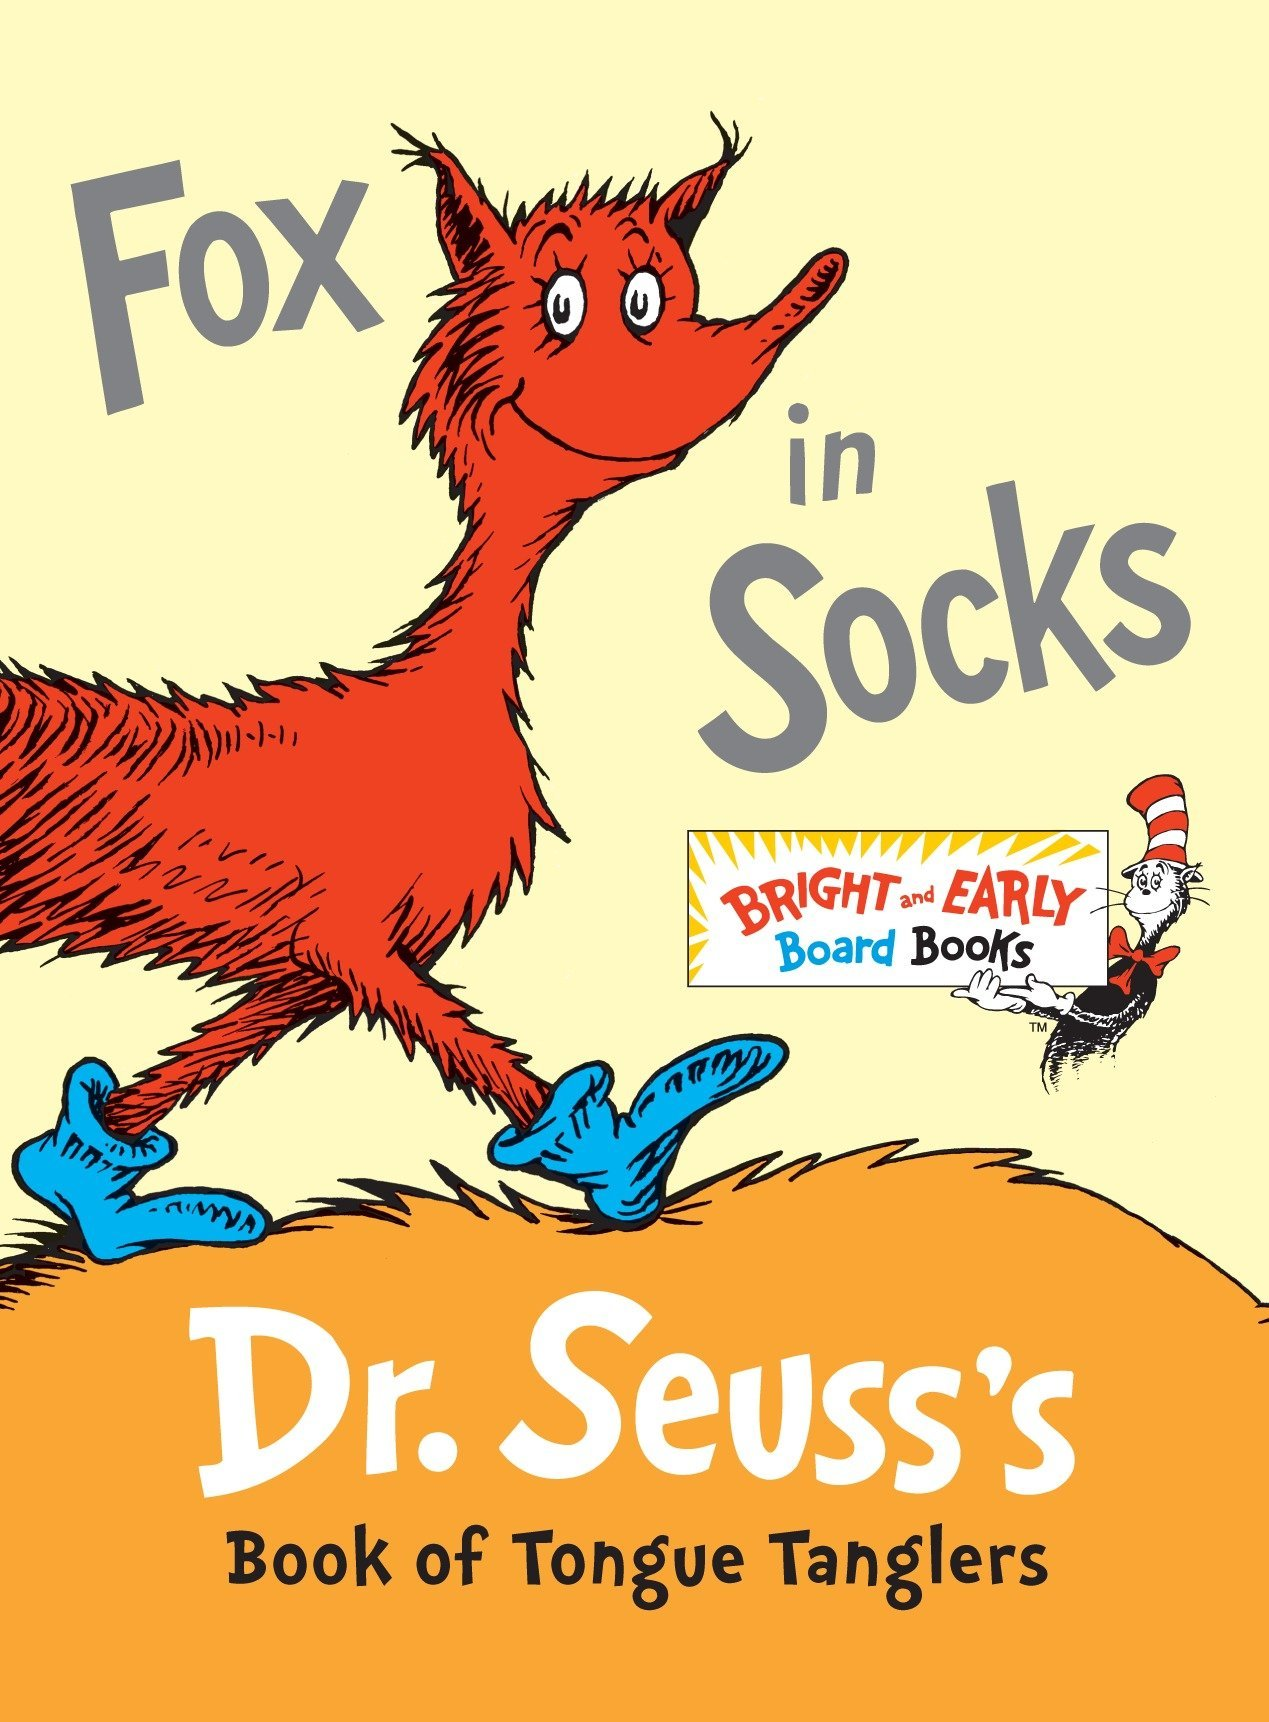 Amazon.com: Fox in Socks: Dr. Seuss's Book of Tongue Tanglers (Bright &  Early Board Books(TM)) (9780307931801): Dr. Seuss: Books